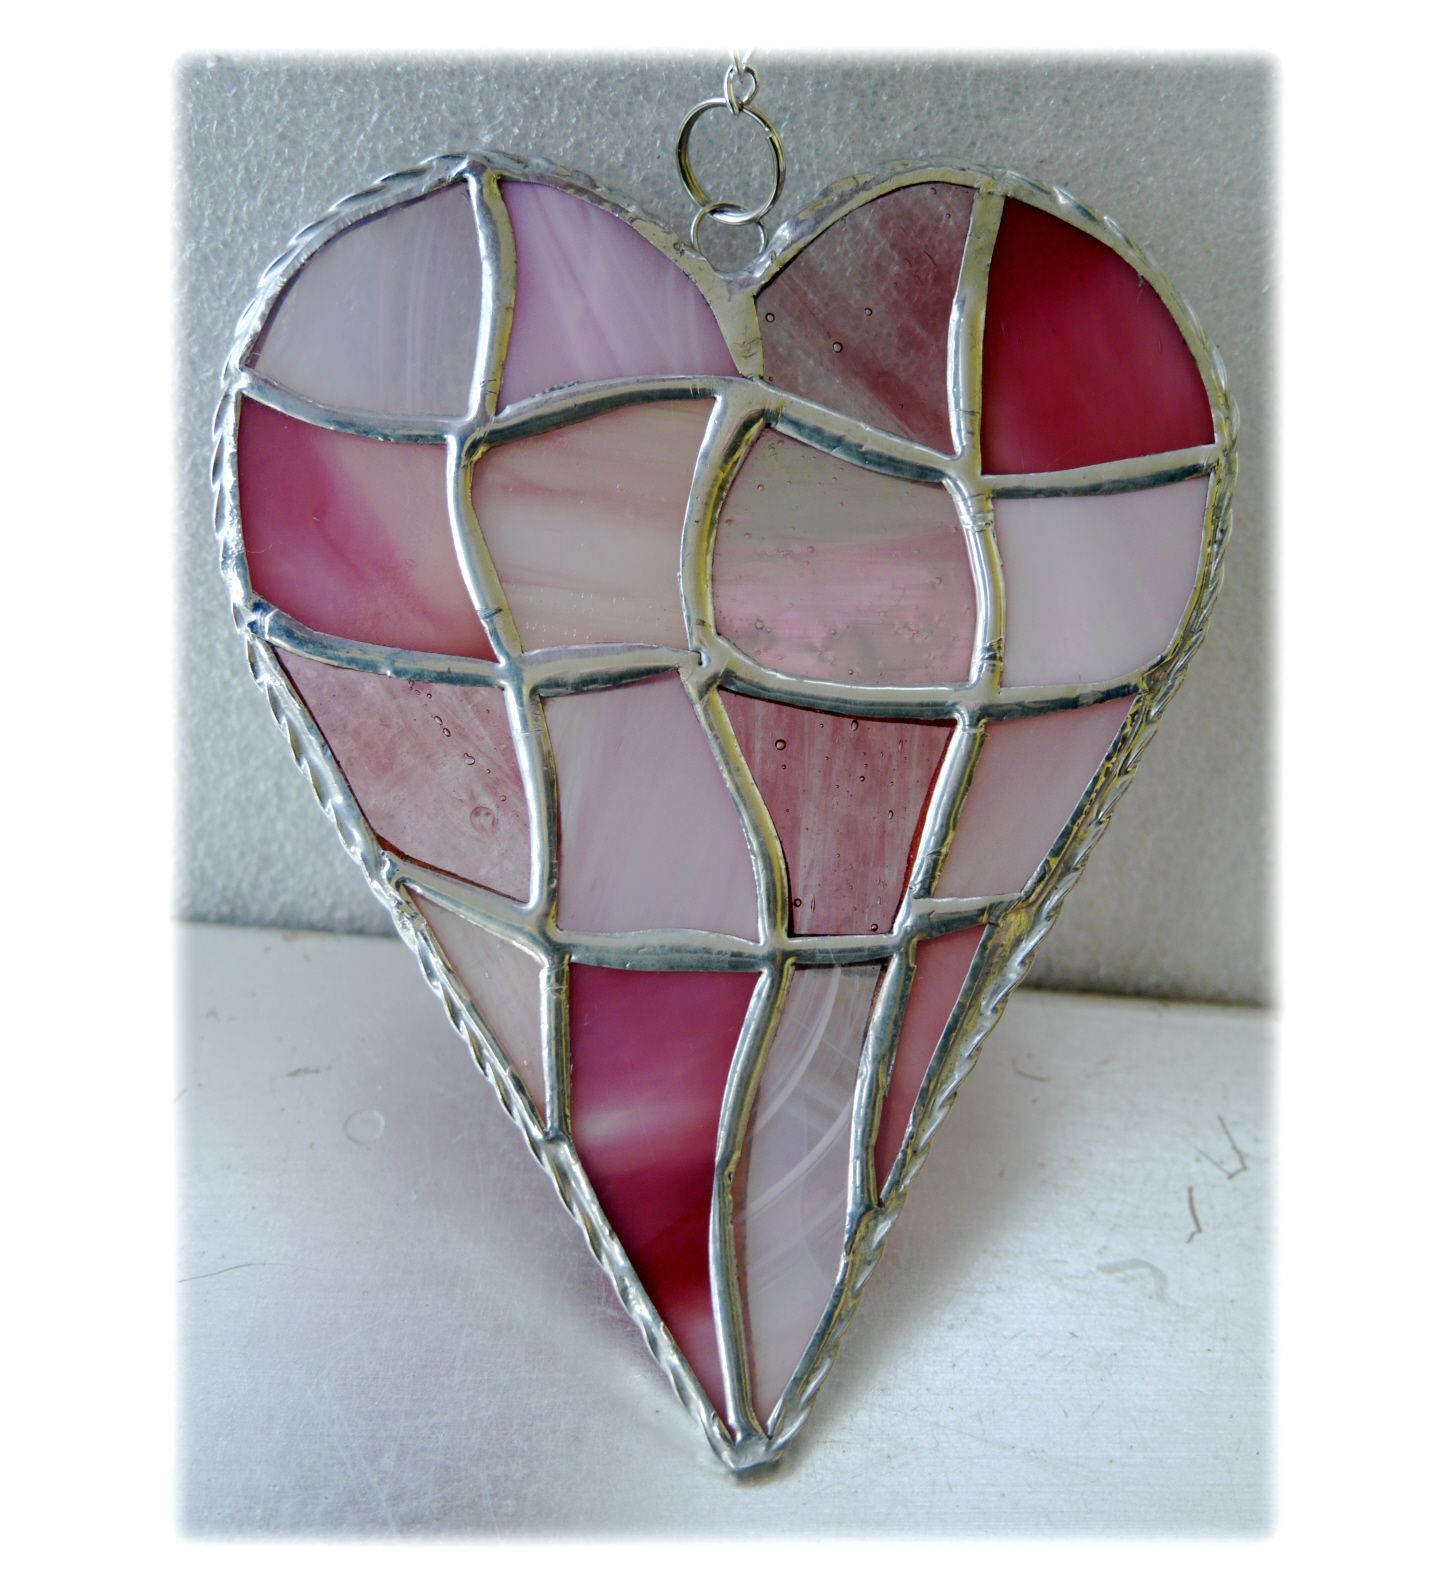 Patchwork Heart 043 Pink #1905 FREE 16.00